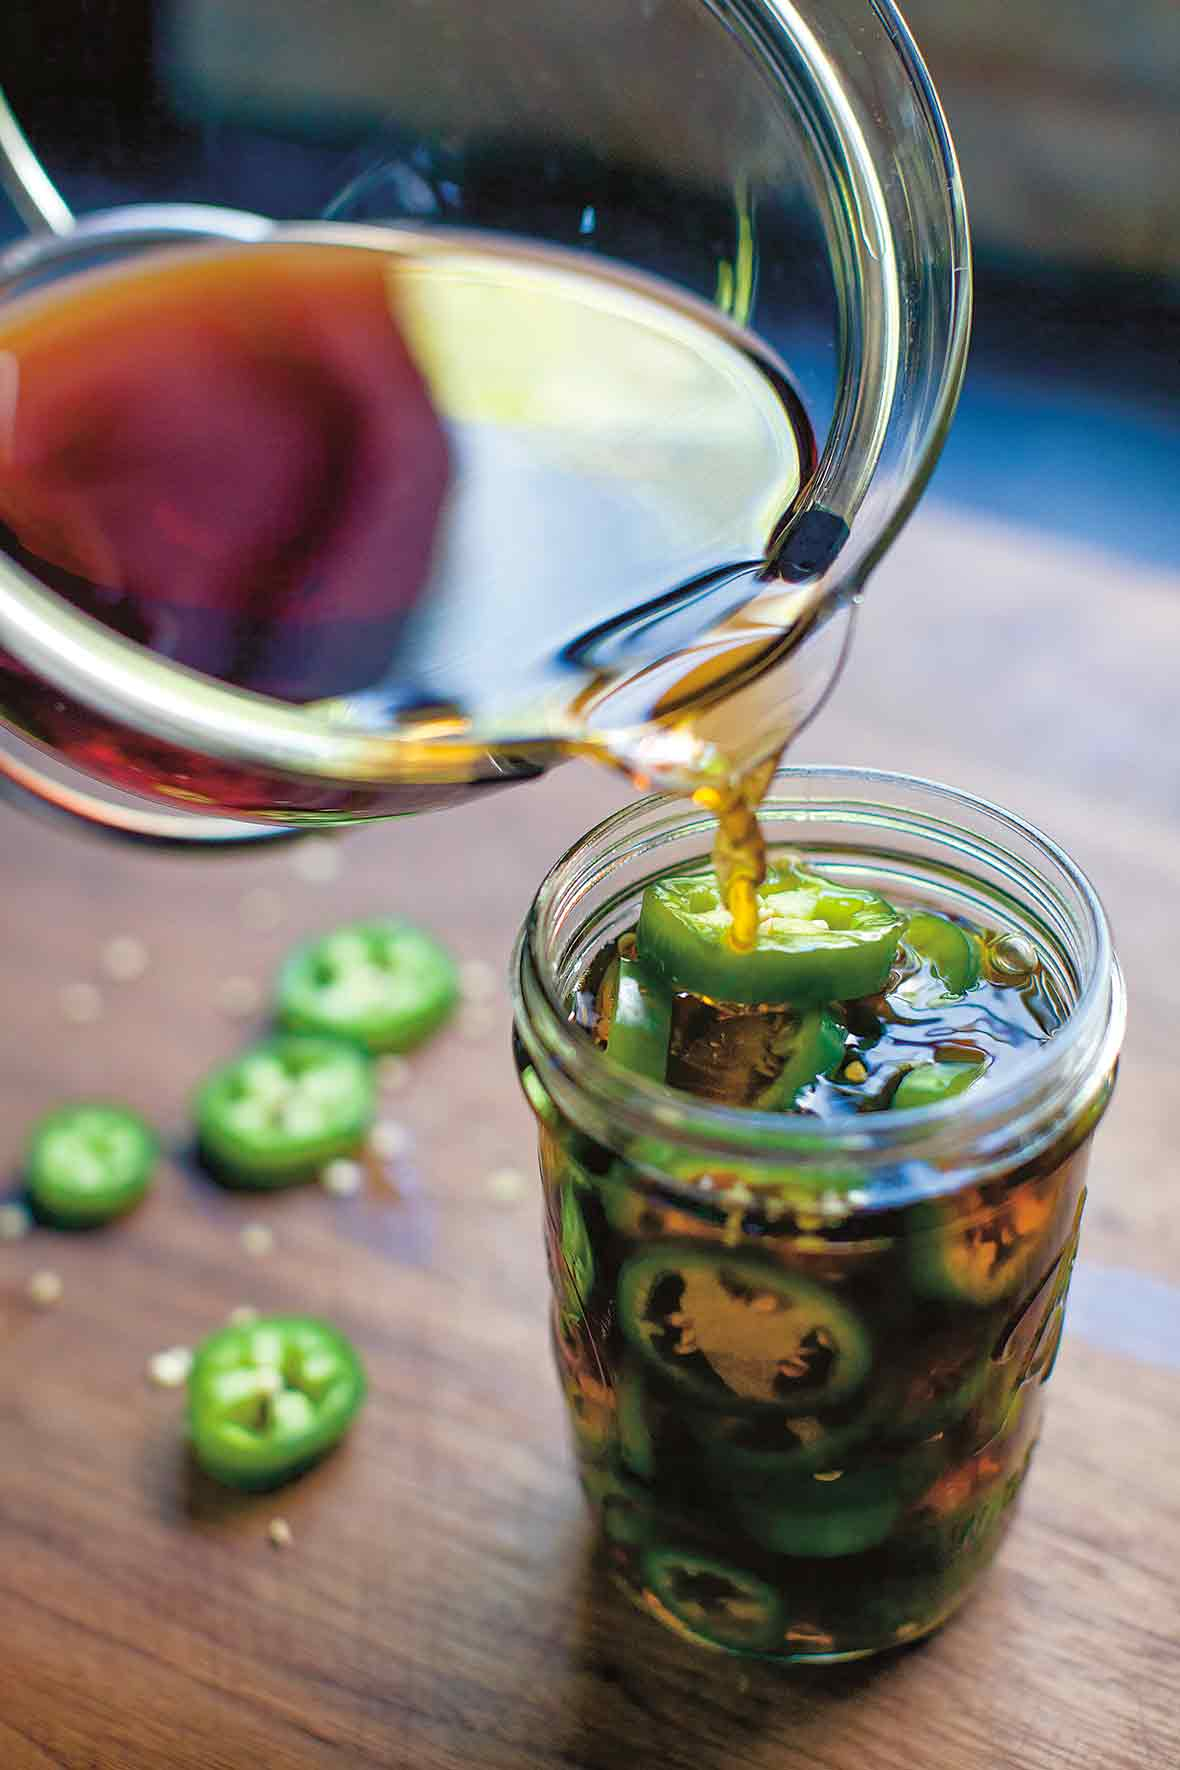 Pickling liquid being poured into a full jar of pickled jalapeno peppers.